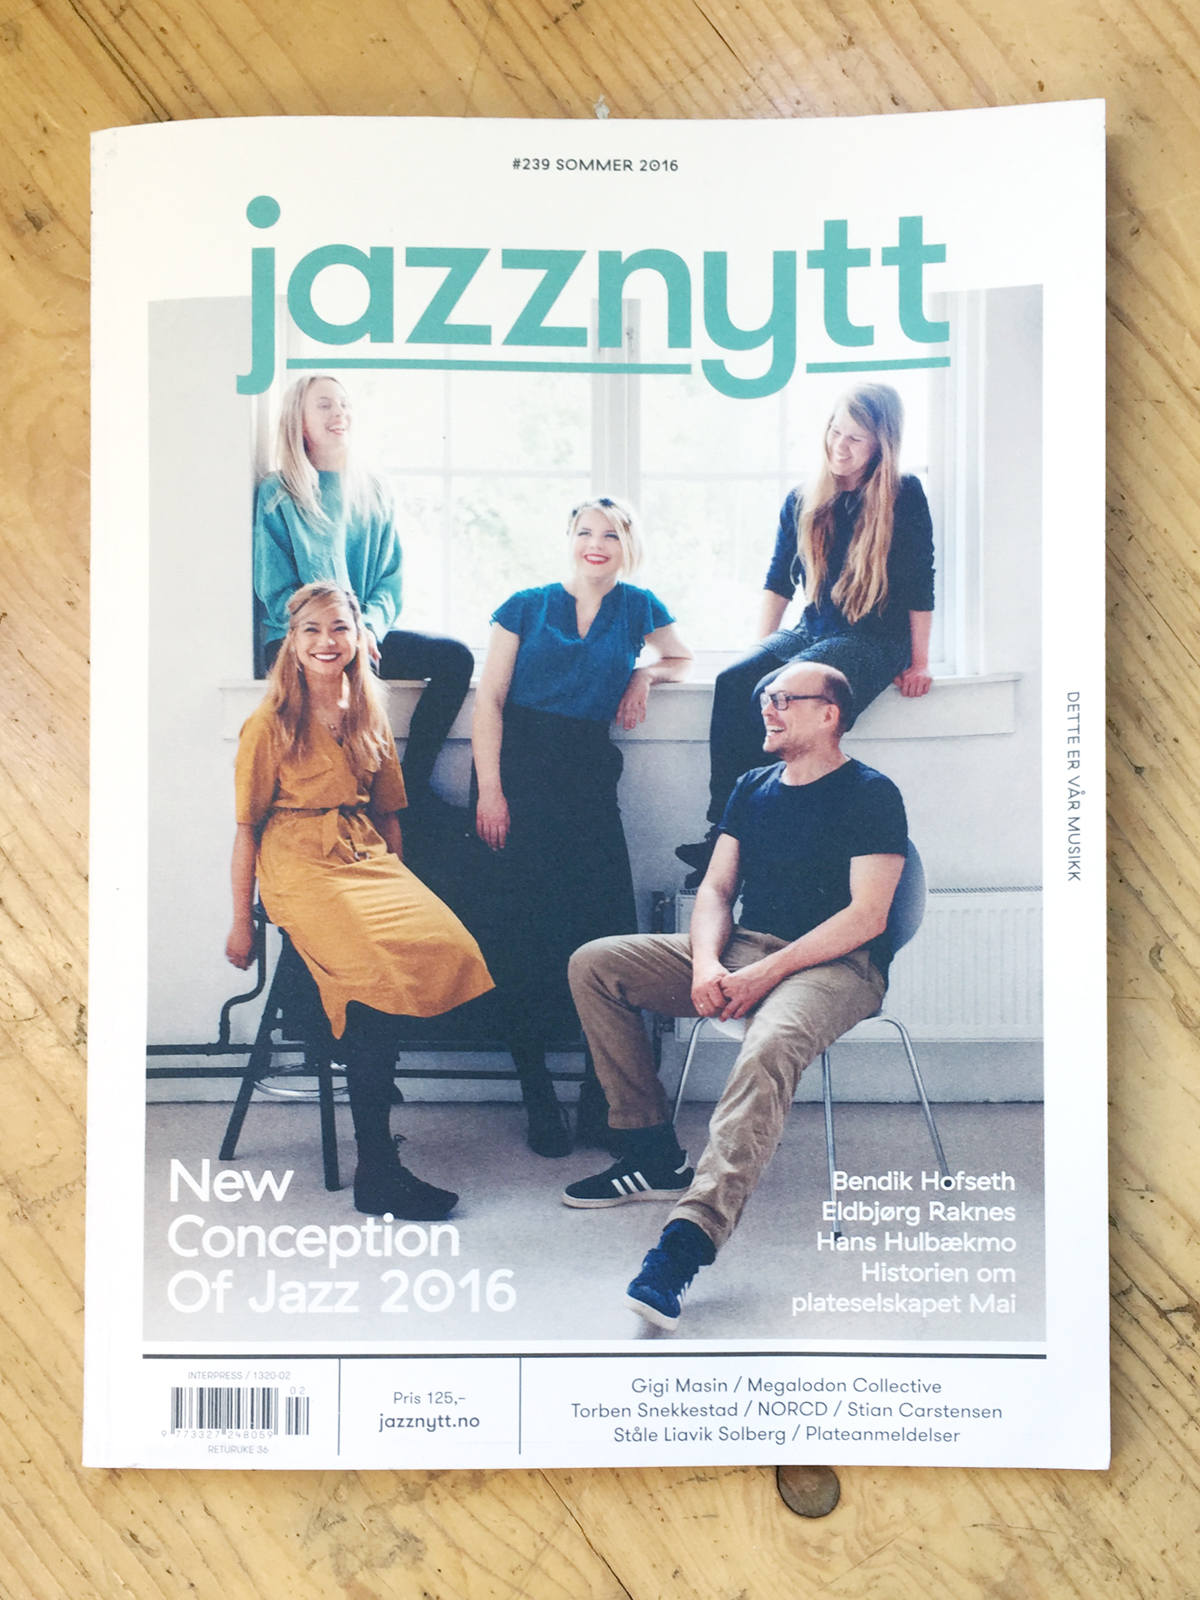 Cover of Jazznytt#239 with Bugge Wesseltoft's New Conception Of Jazz!